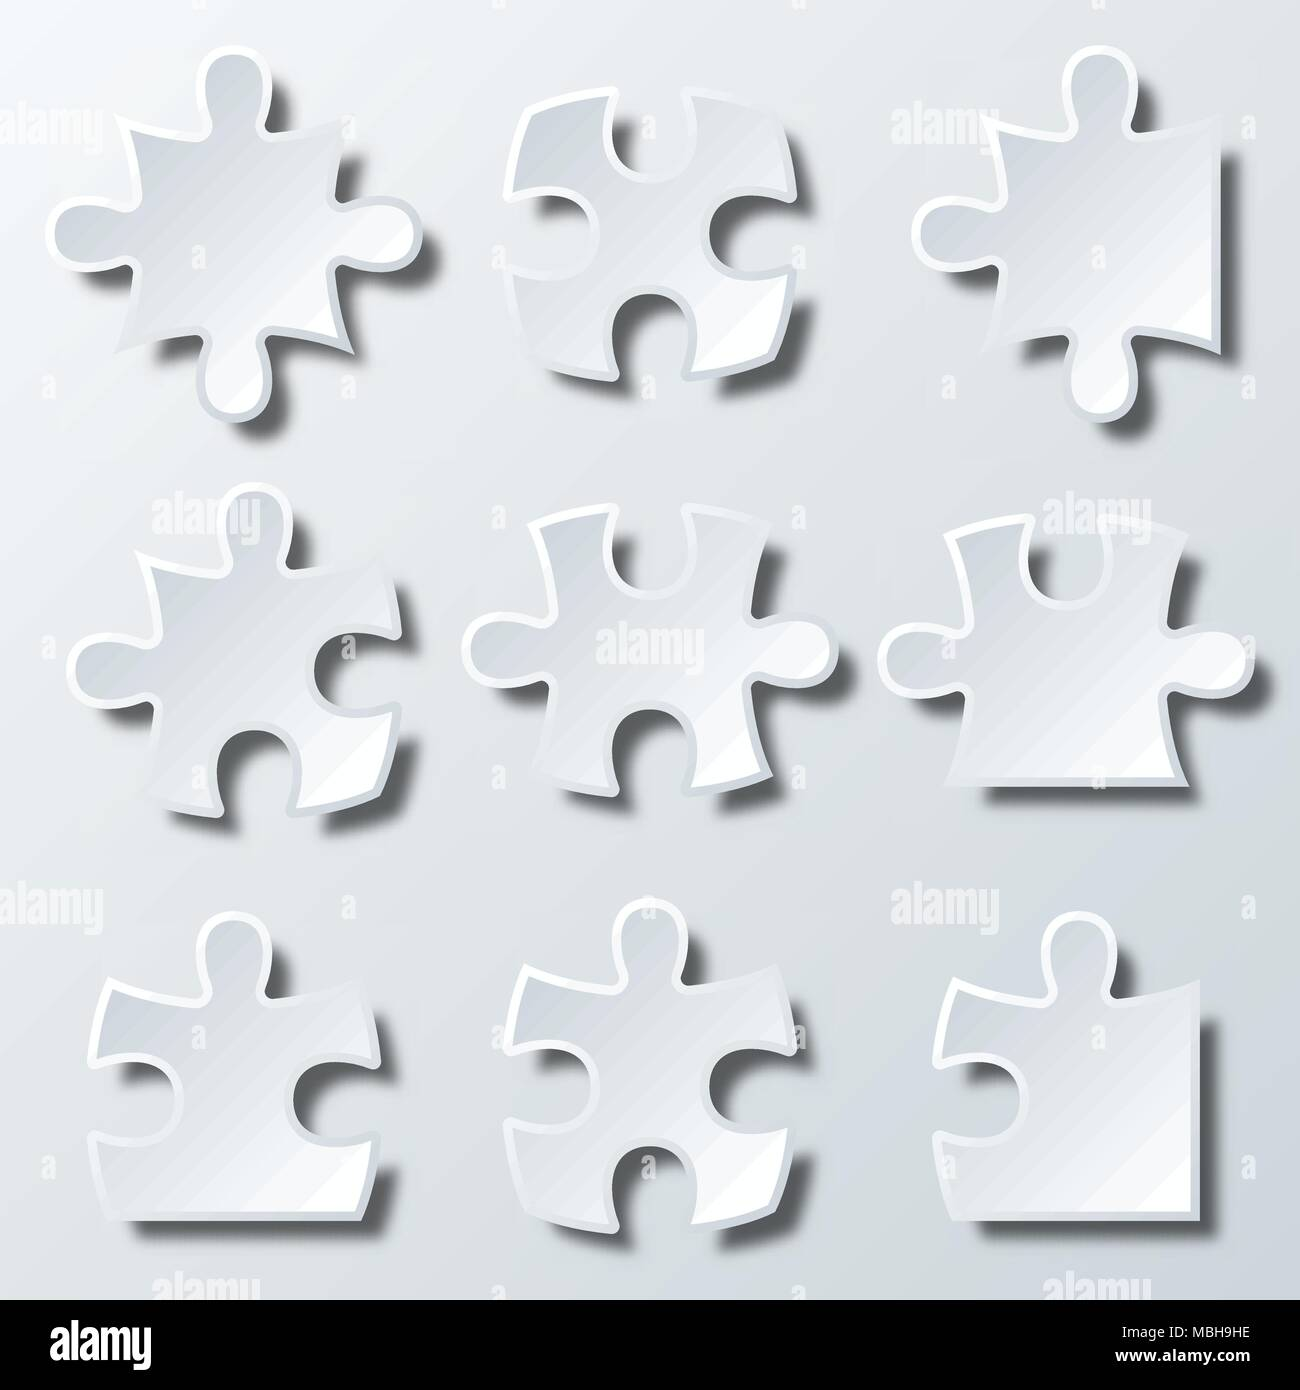 Variety shape pieces of Paper jigsaw puzzle for Business idea